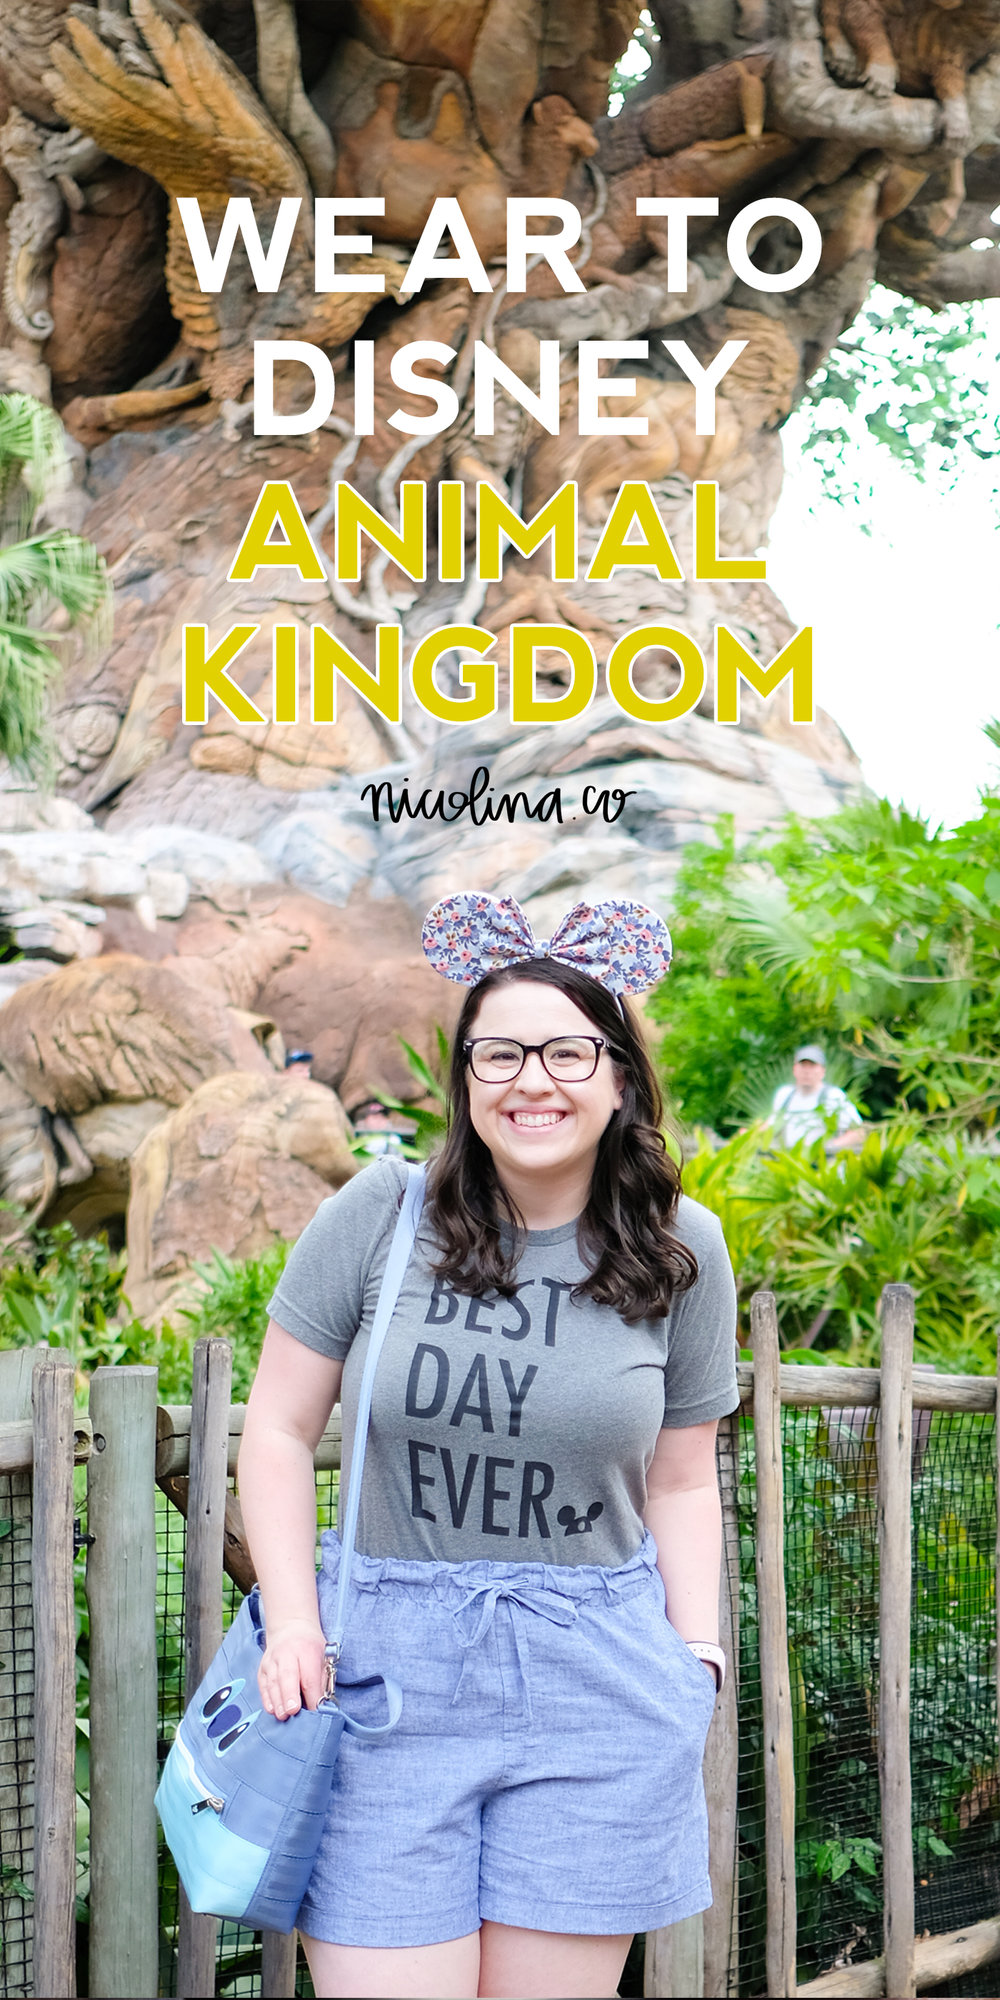 WeartoDisney_animalkingdom.jpg